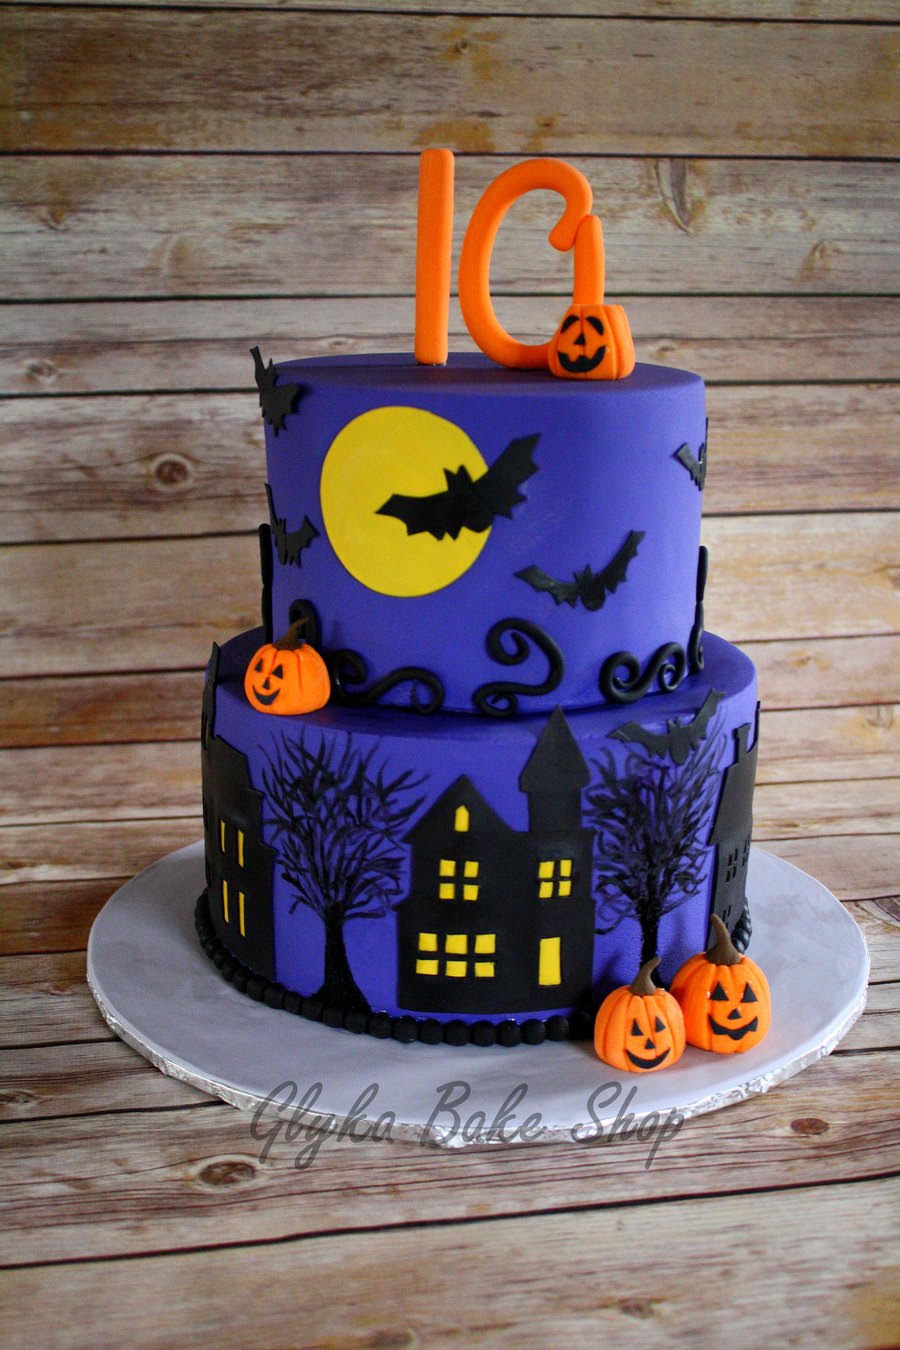 Miraculous 13 Ghoulishly Festive Halloween Birthday Cakes Southern Living Funny Birthday Cards Online Aeocydamsfinfo